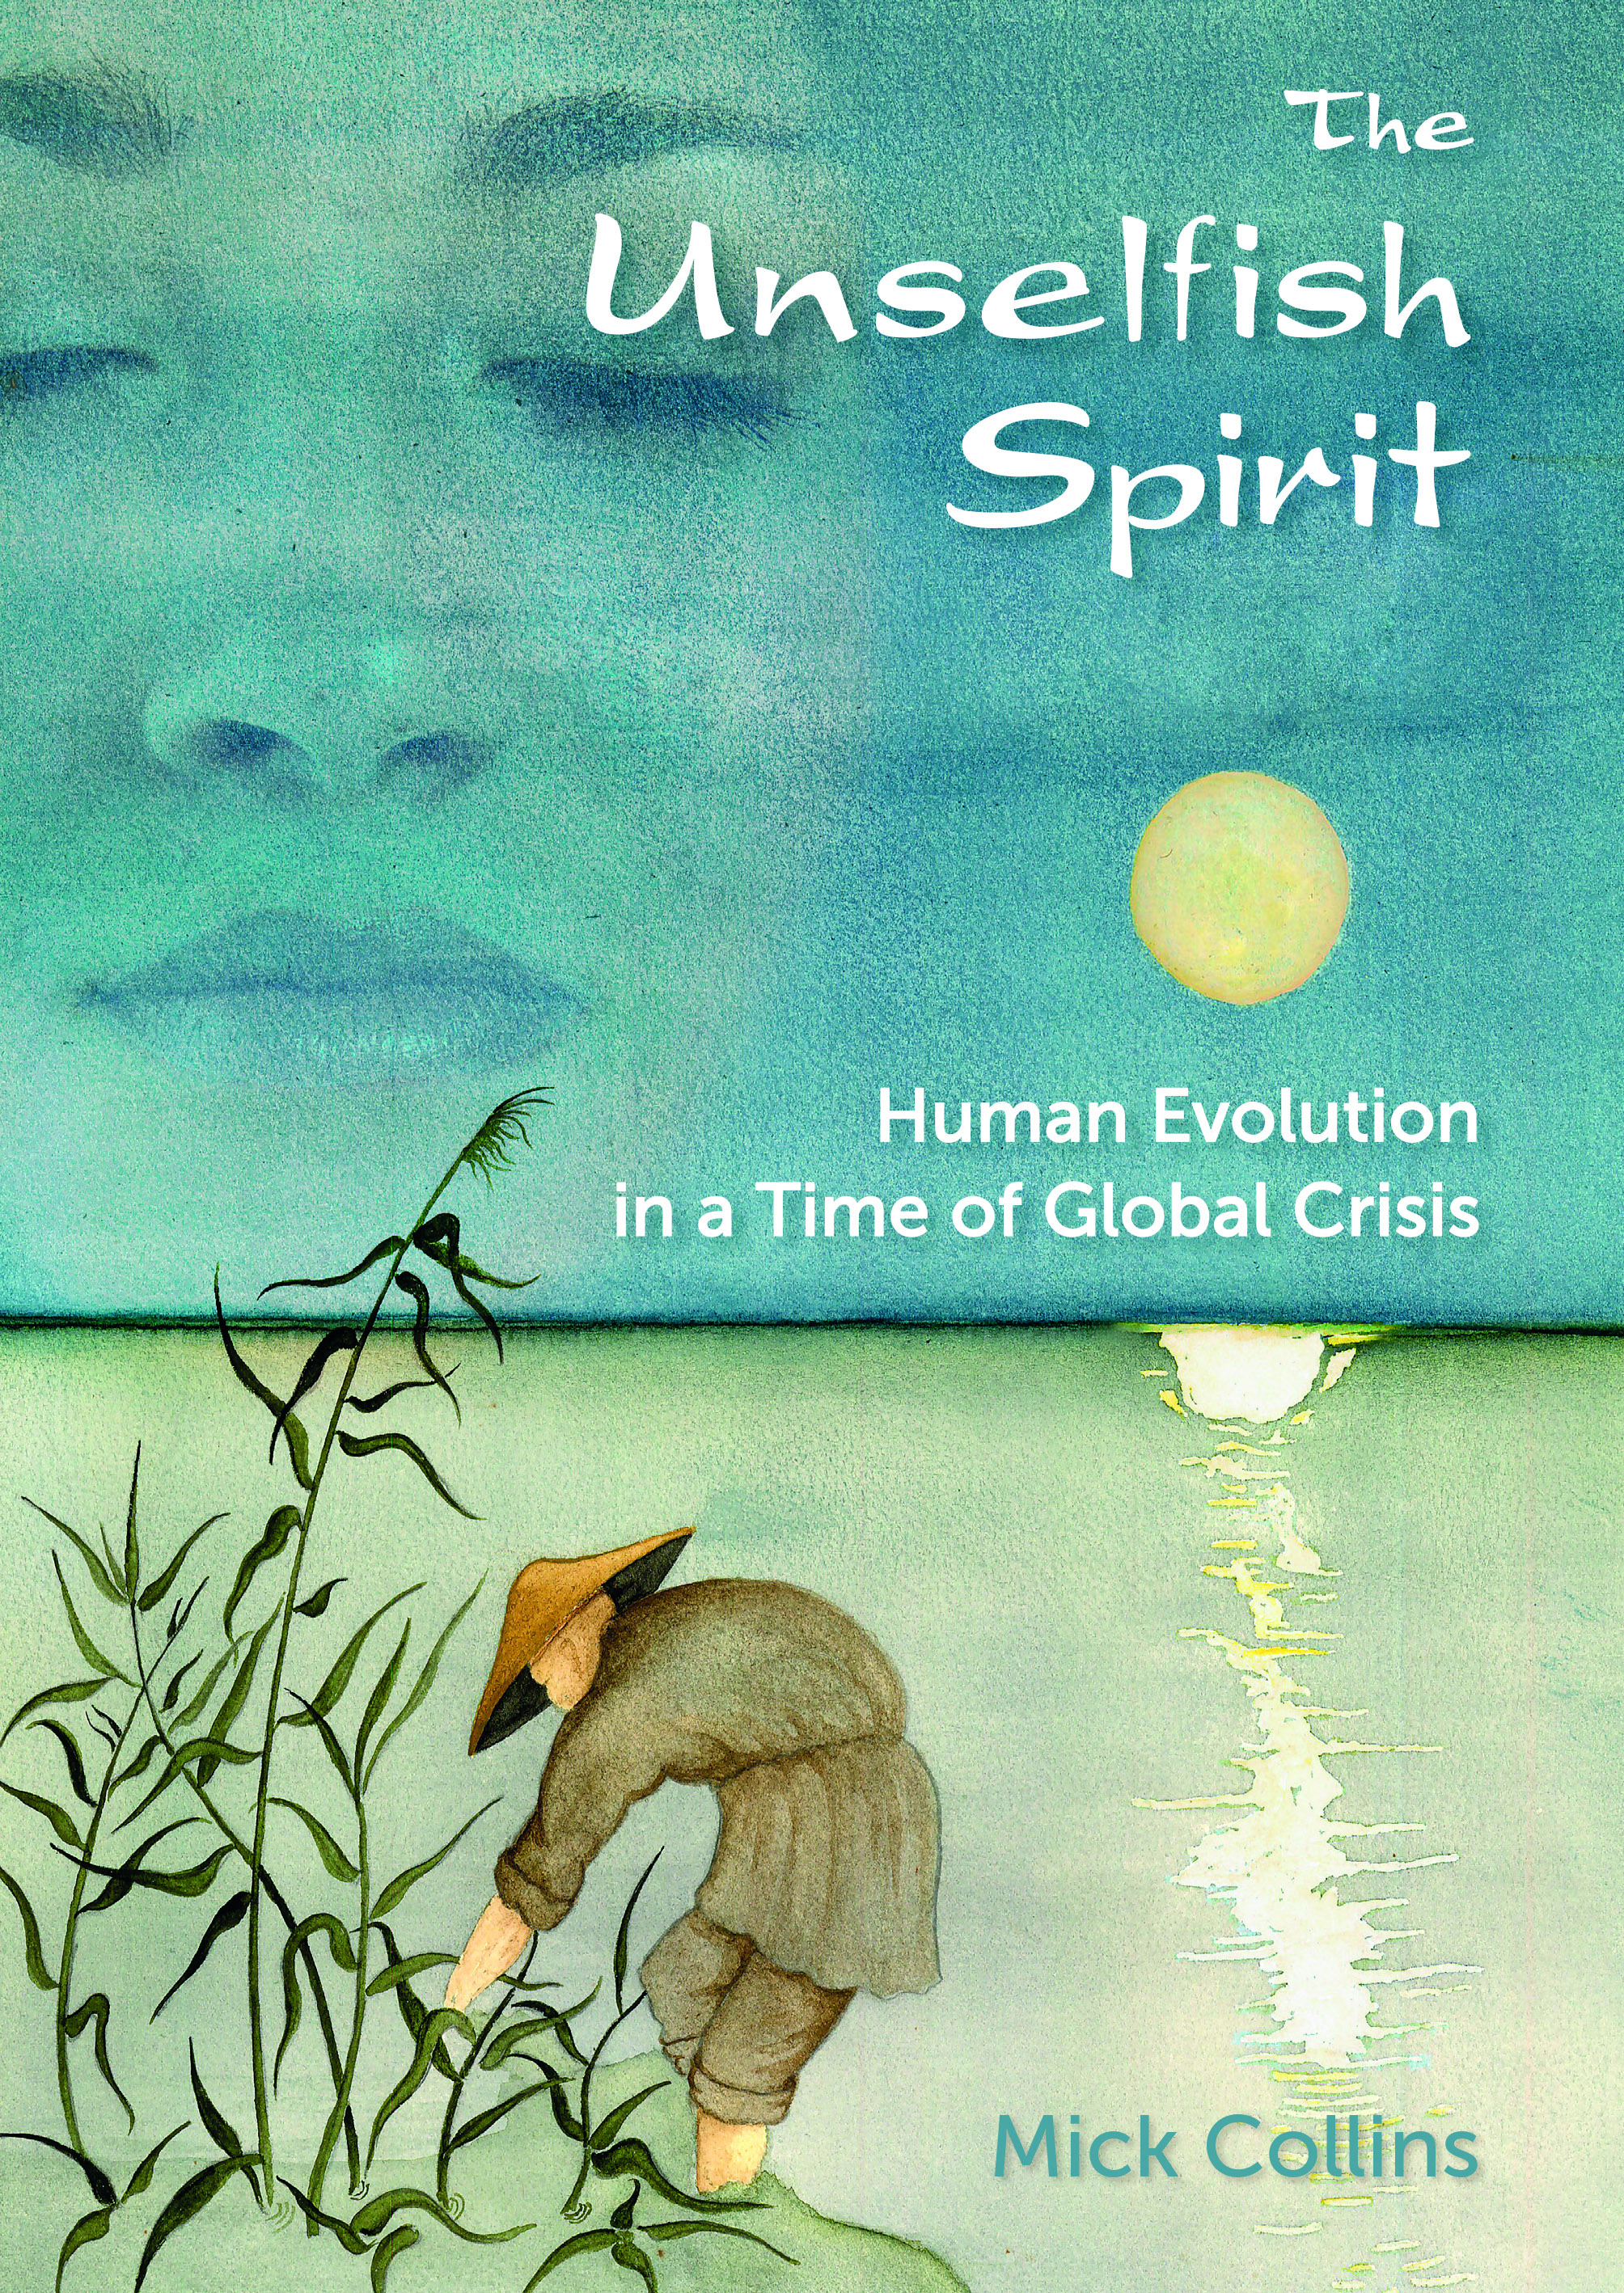 Unselfish Spirit: Human Evolution in a Time of Global Crisis by Mick Collins PhD.